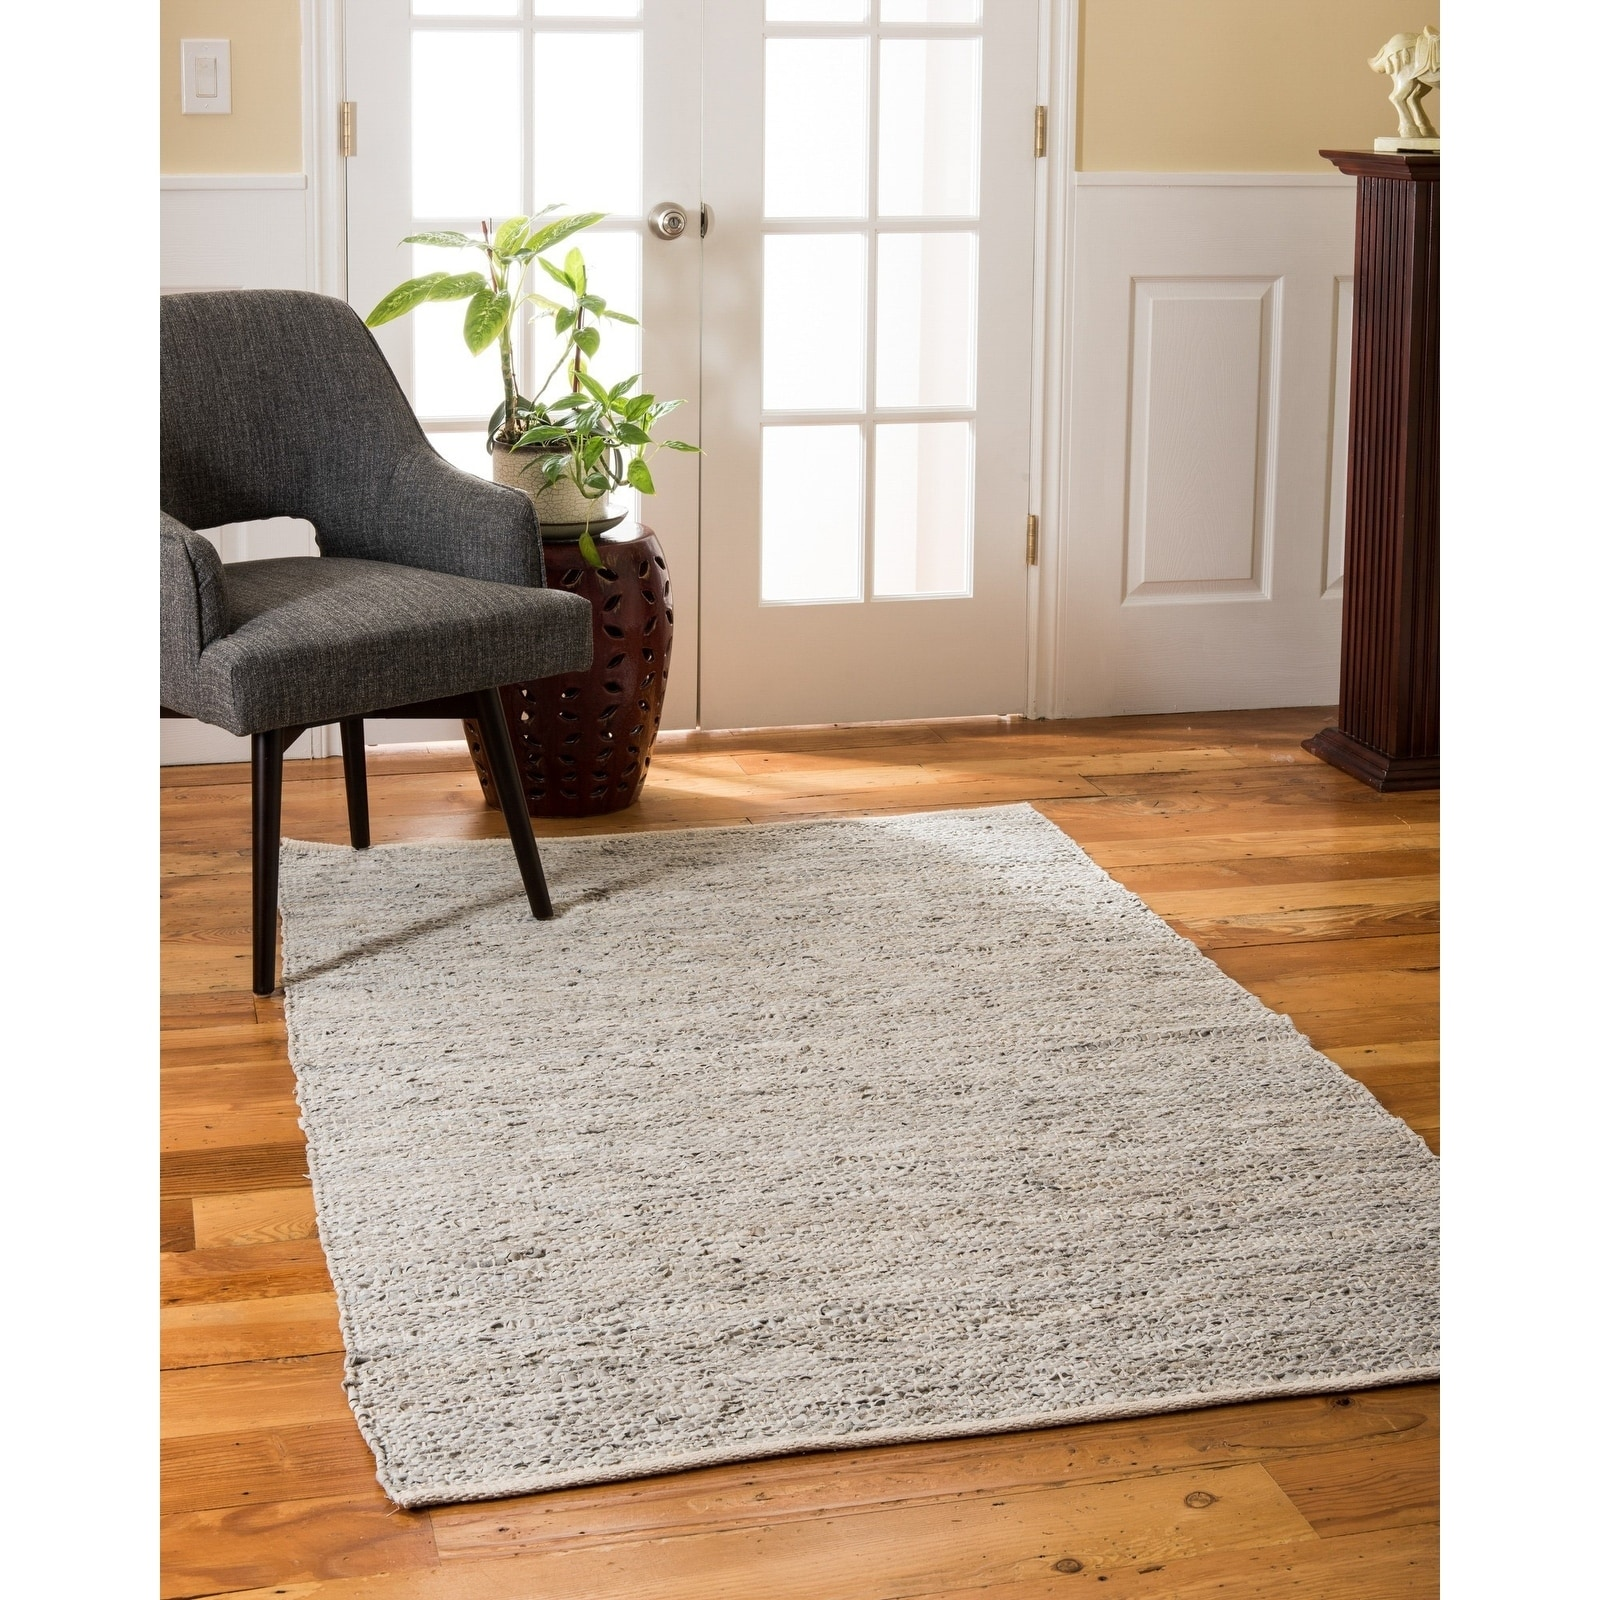 Natural Area Rugs Handmade Reversible Anchor Leather Rectangle Rug (9X12) Gray - 9 x 12 (9 x 12 - Grey)